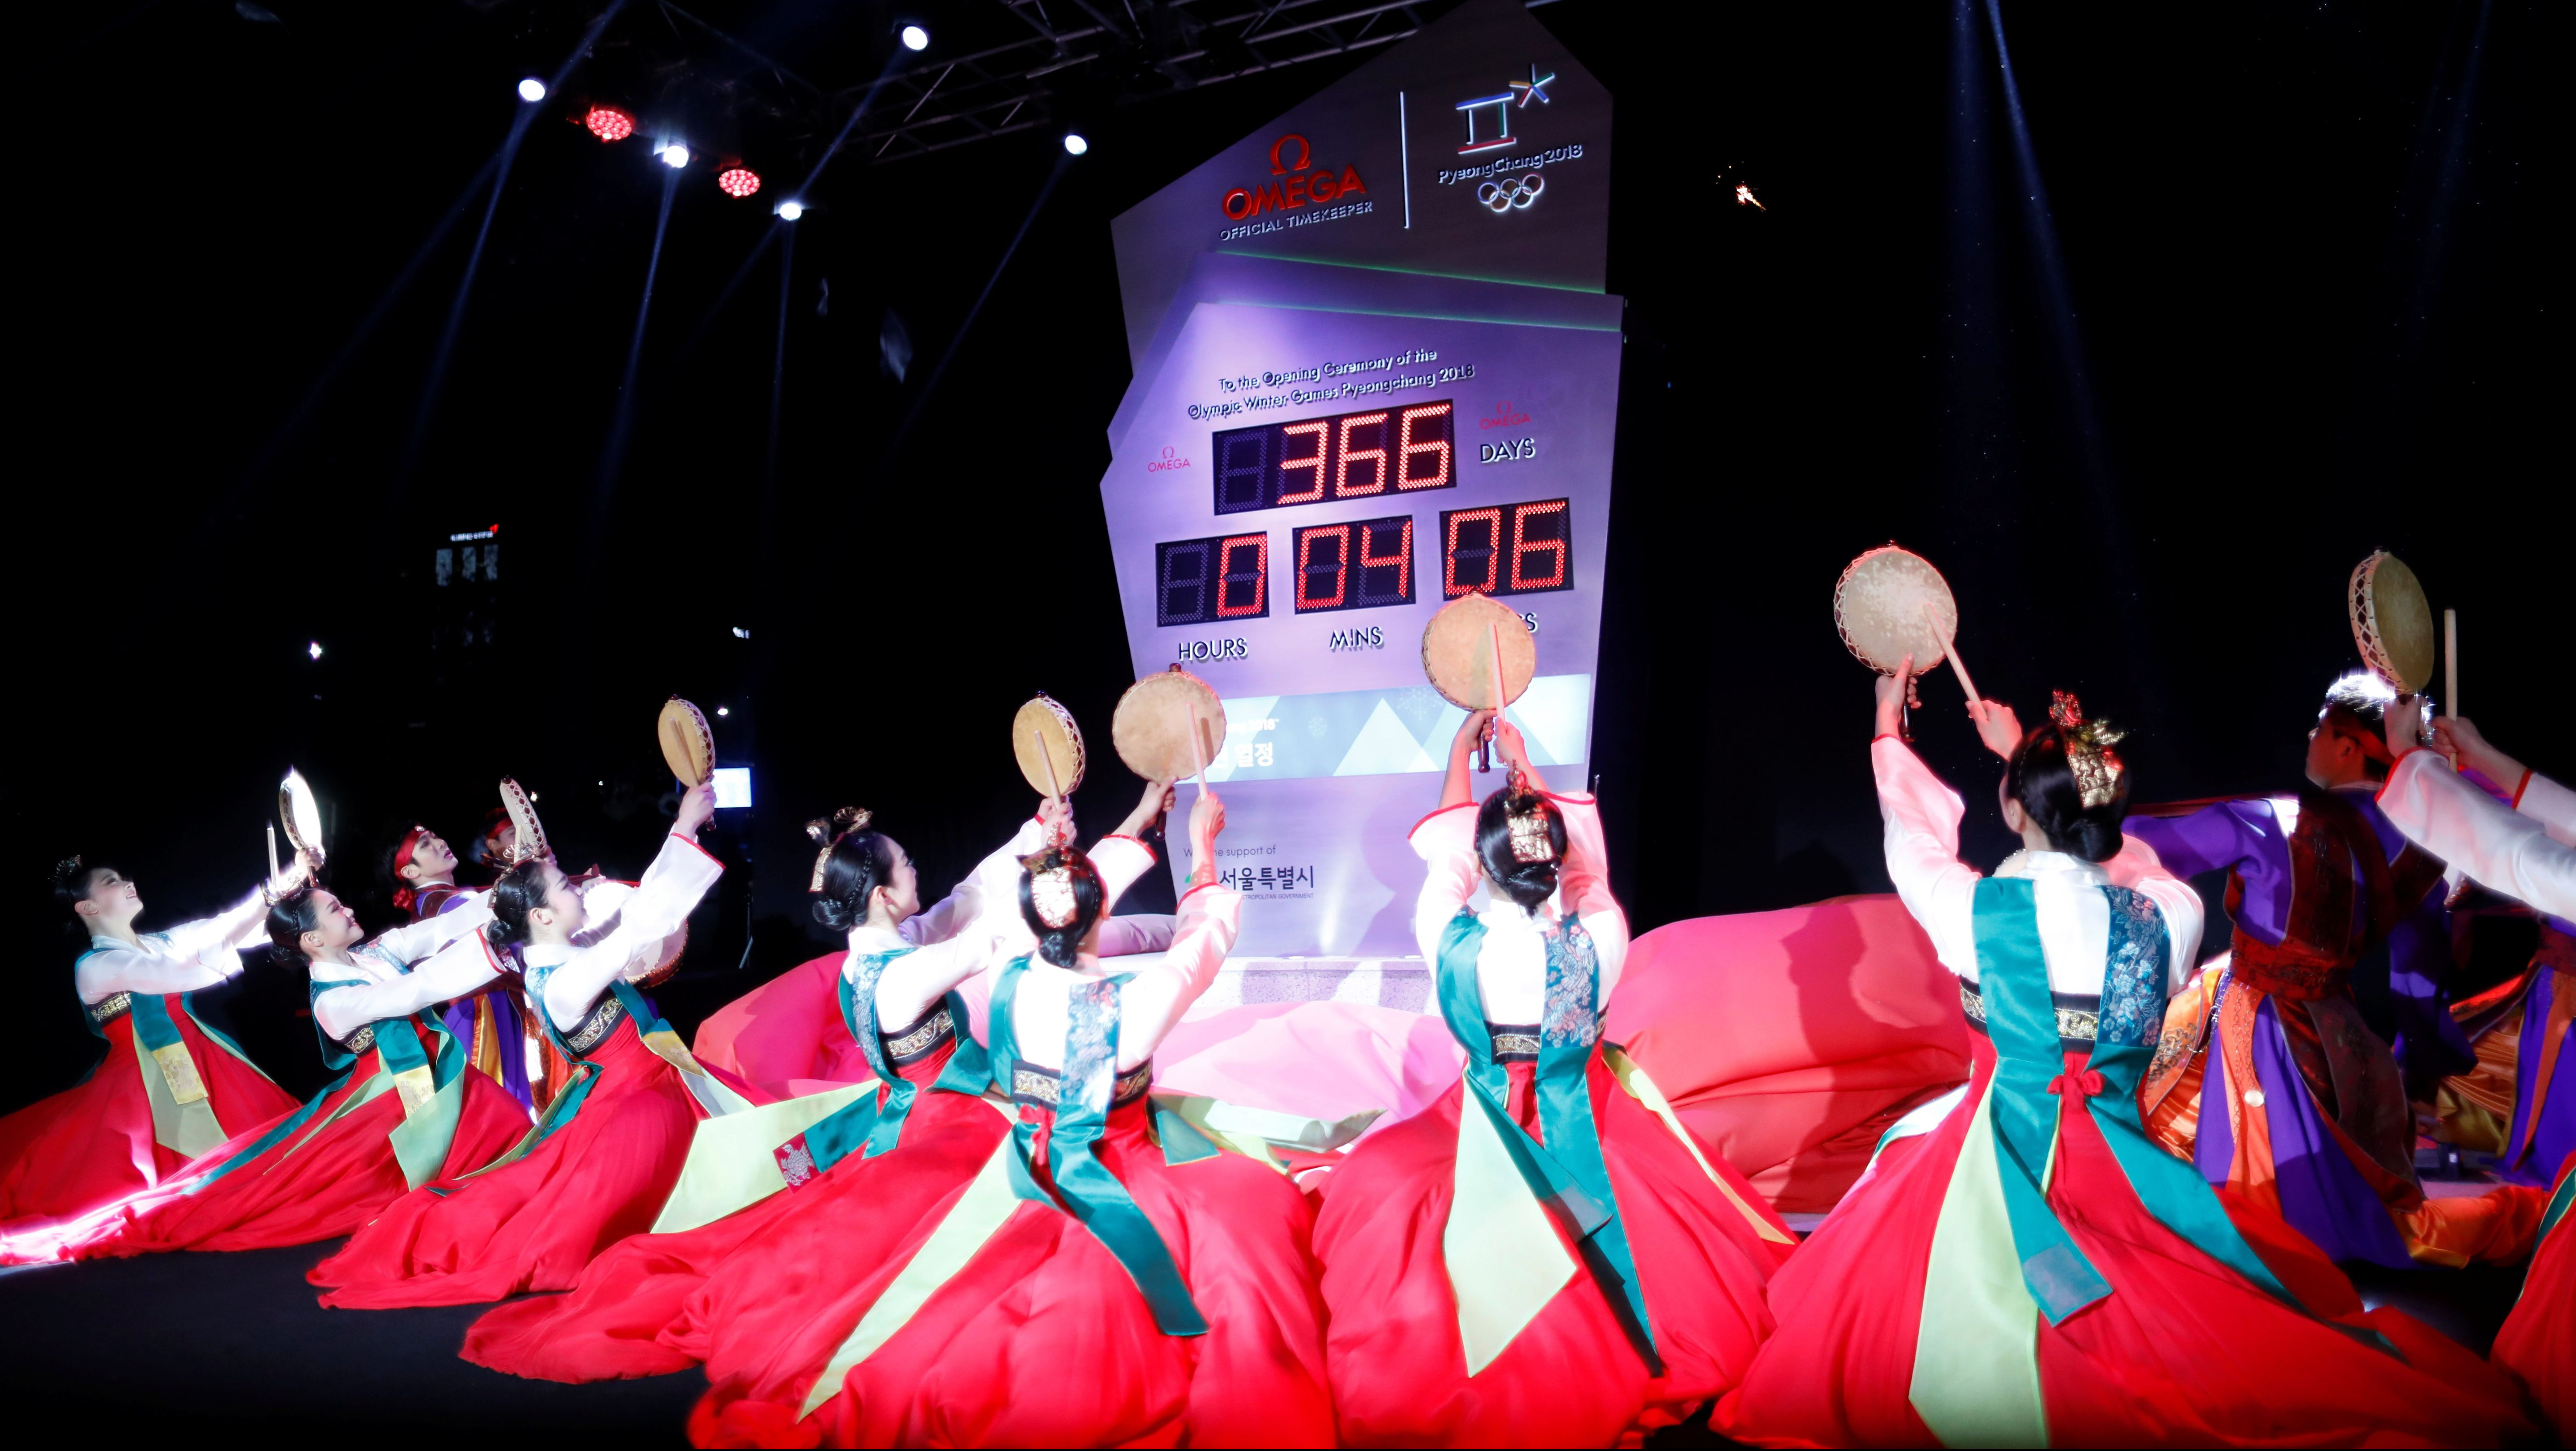 Women wearing Korean traditional costume Hanbok perform during an unveiling ceremony of the Olympic countdown clock to mark a year to the 2018 Pyeongchang Winter Olympic Games in Seoul, South Korea, February 8, 2017.   REUTERS/Kim Hong-Ji - RC190AA0E5D0